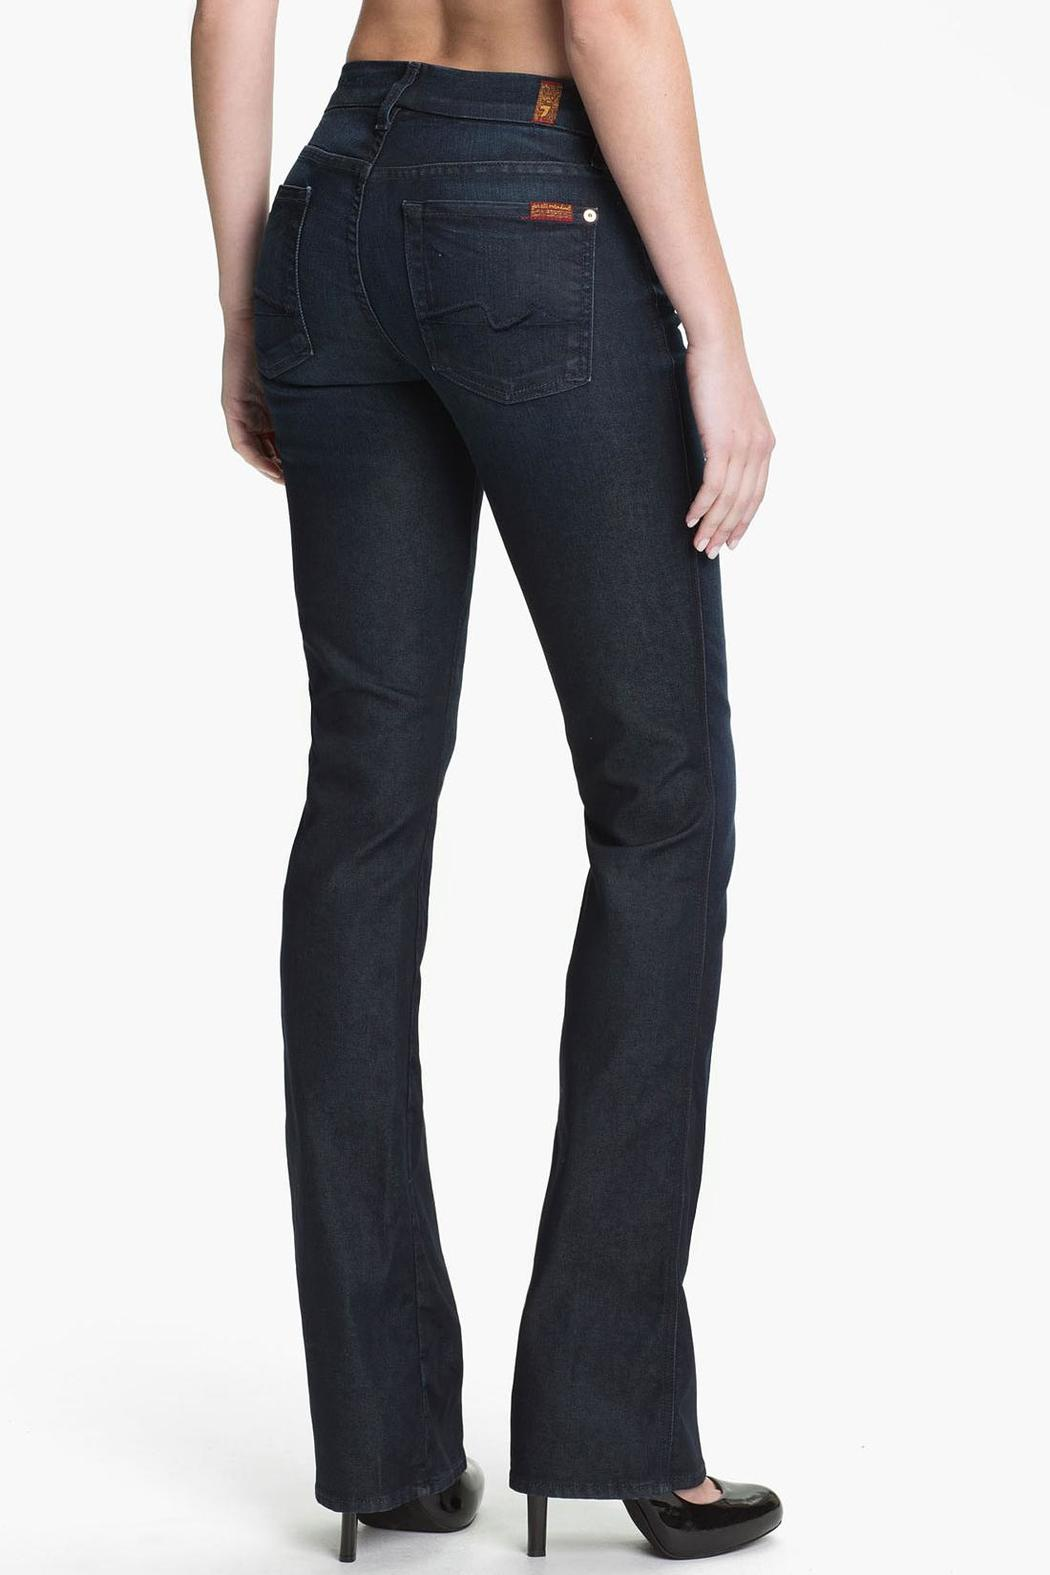 7 For all Mankind Kimmie Bootcut Night-Star - Front Full Image